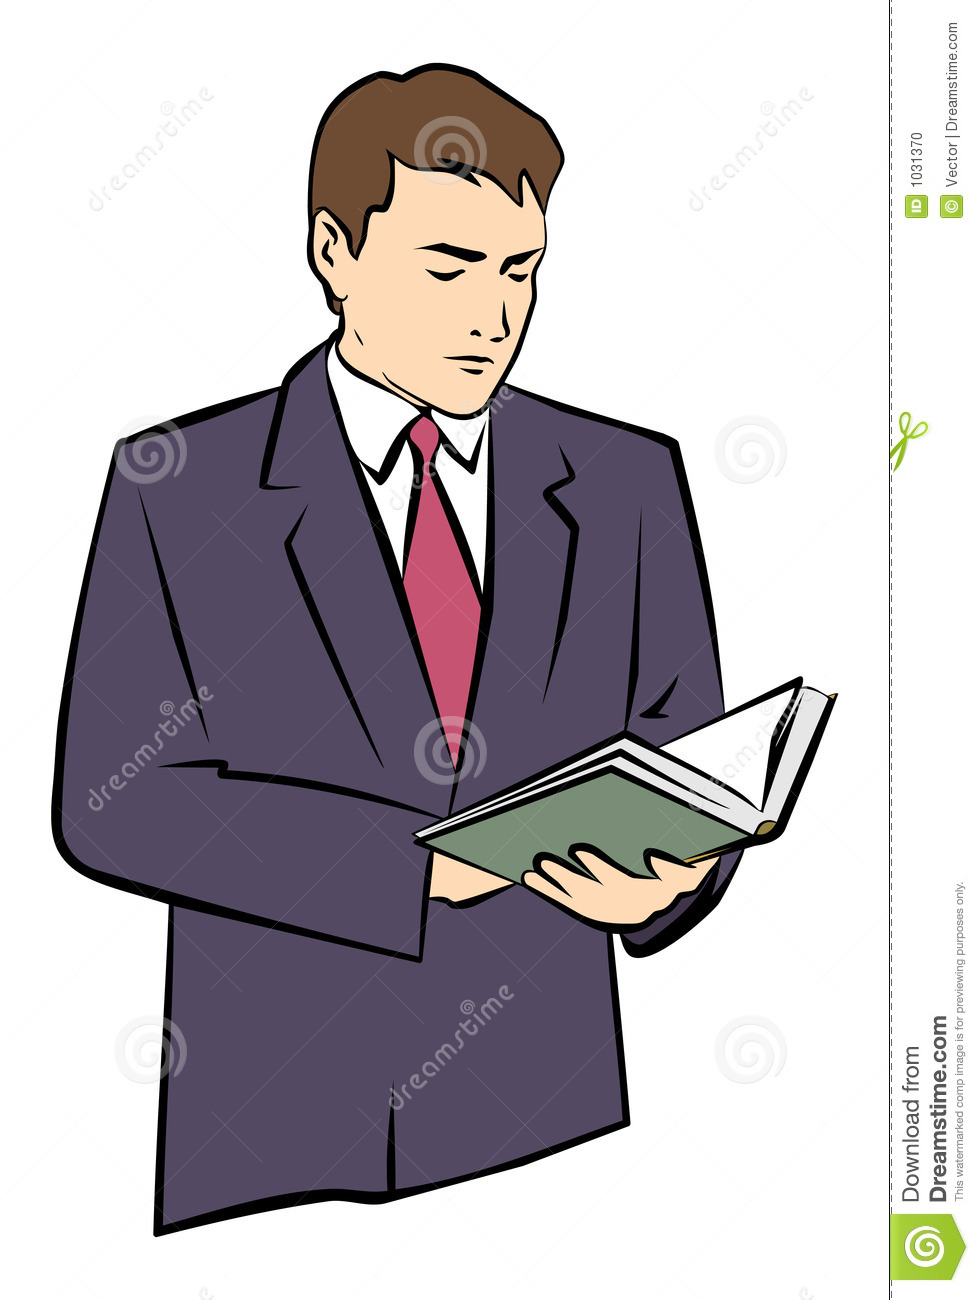 A Man Holding a Book in His Hands. JPG and EPS